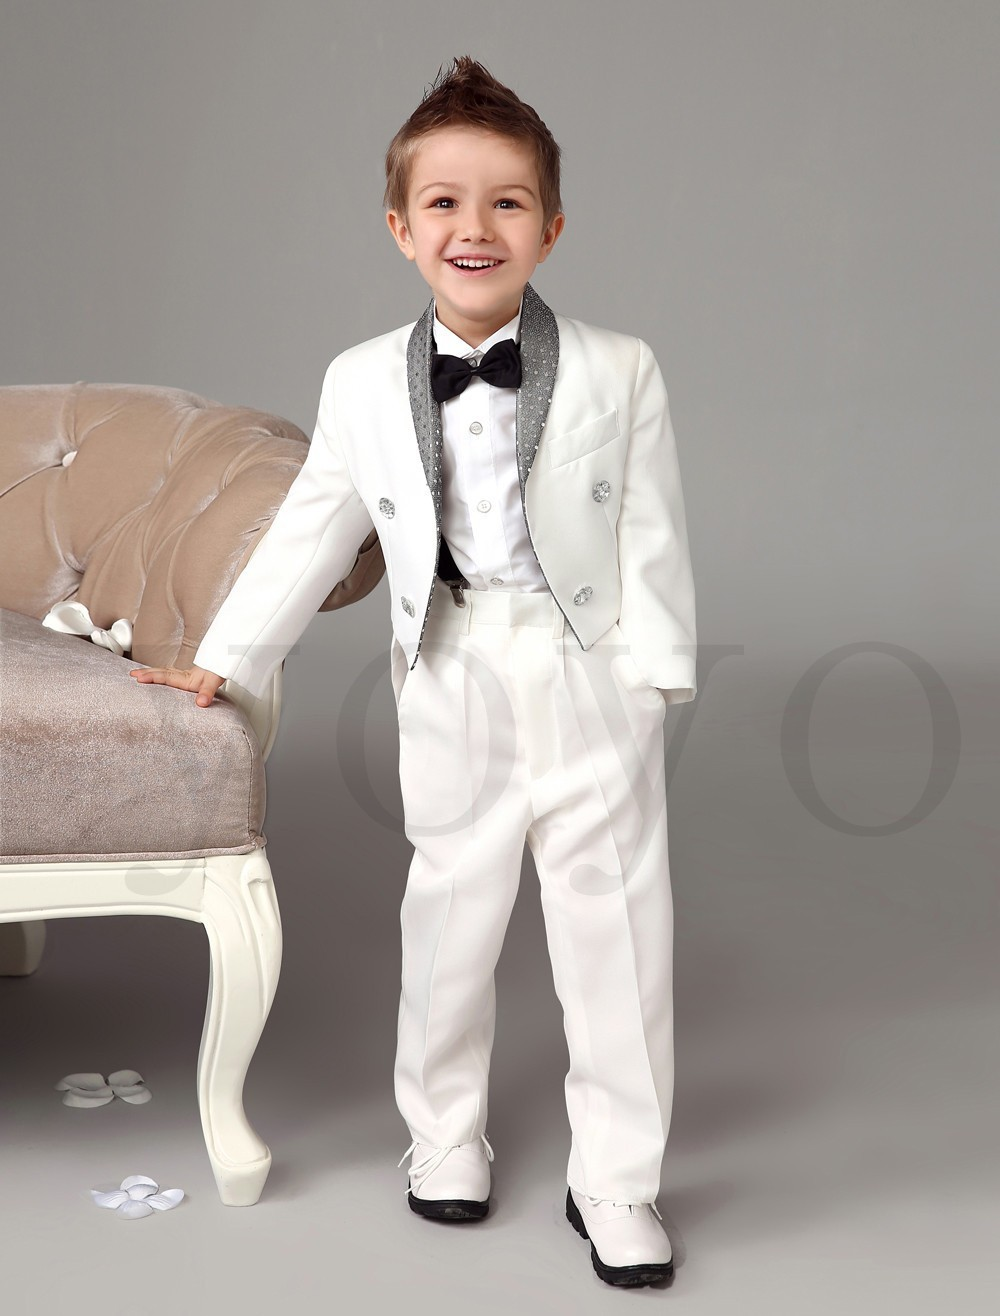 Many online childrens formal wear retailers, such as ganjamoney.tk and ganjamoney.tk offer discounts and incentives for ordering online. So, it's possible to find a great communion dress or outfit that is also high-quality, without spending a fortune.